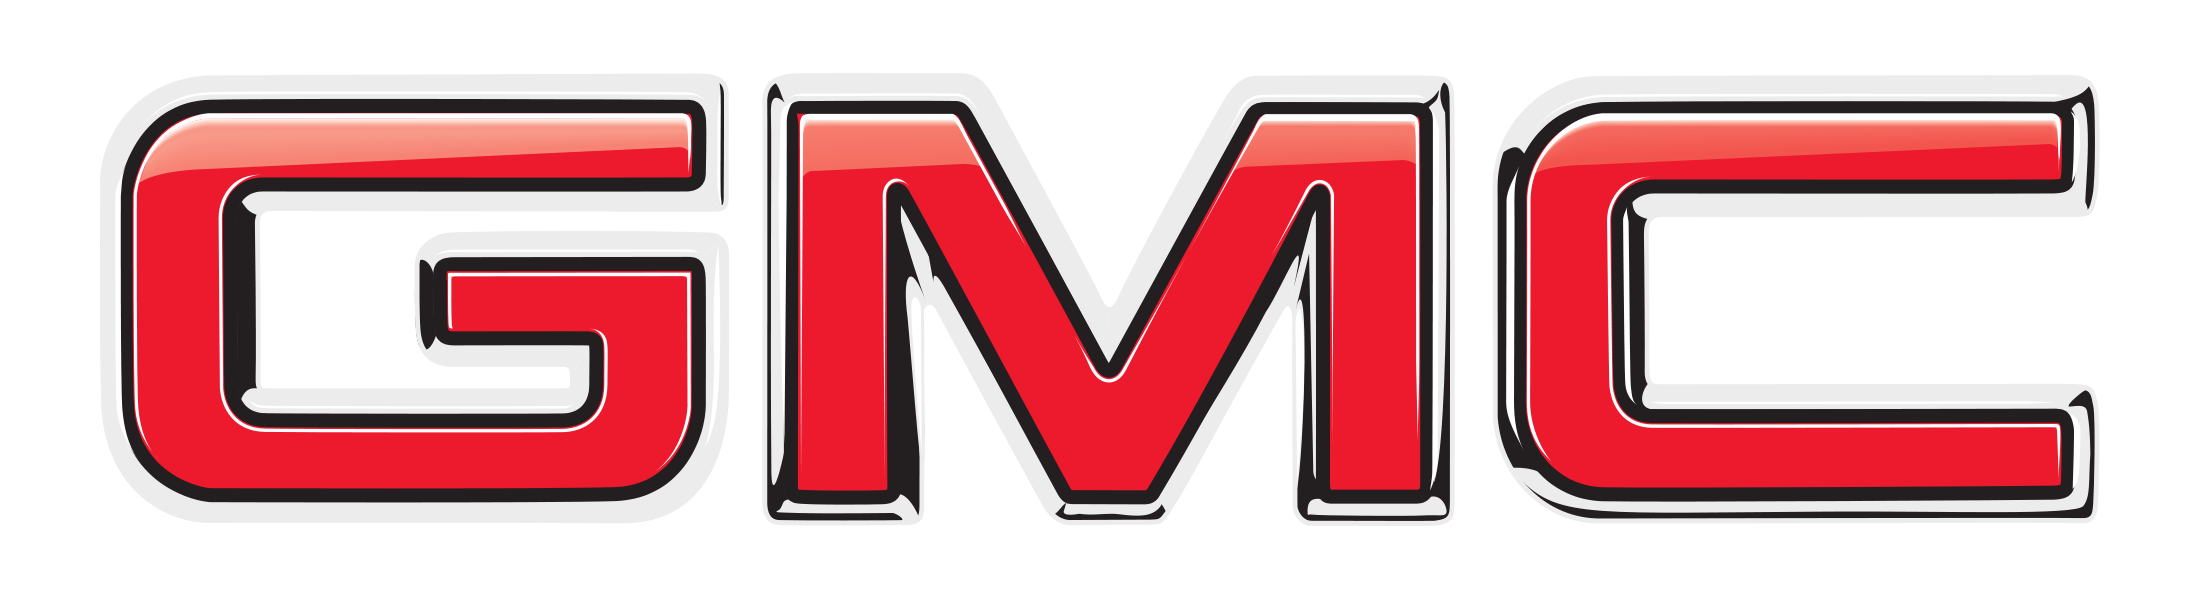 Gmc Logo Png - GMC Logo, HD Png, Meaning, Information